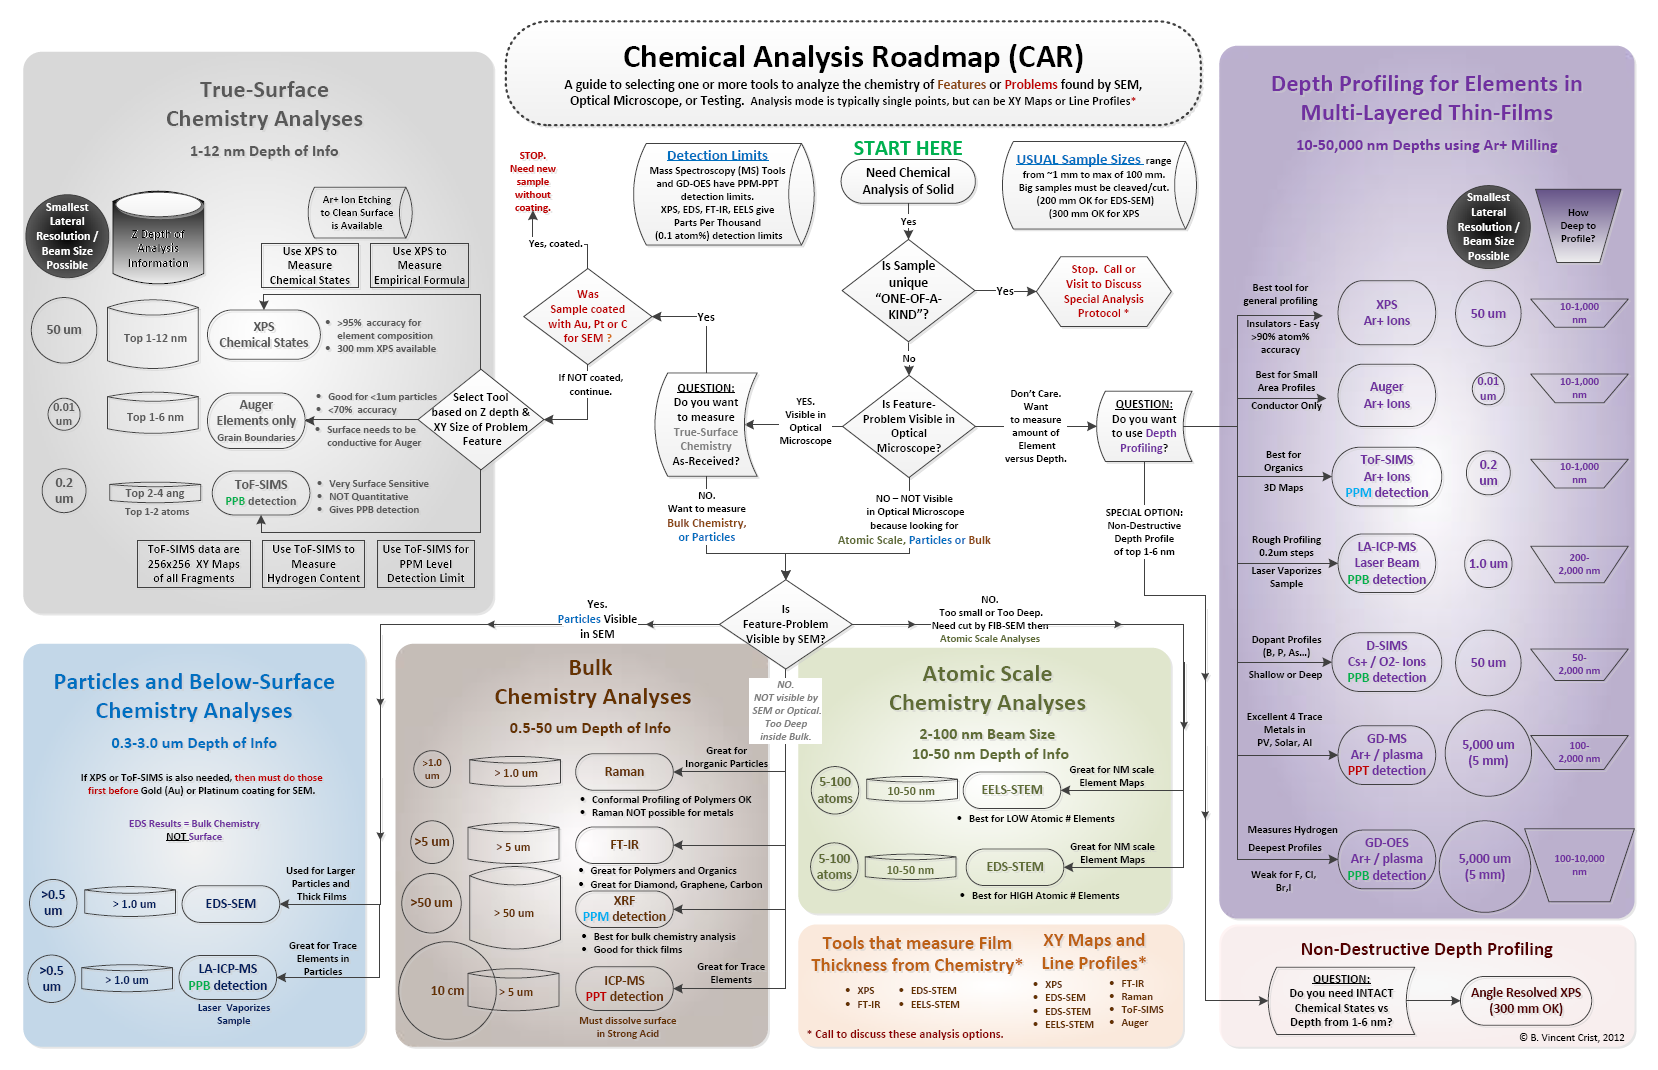 visual guides to selecting tools for chemical analysis